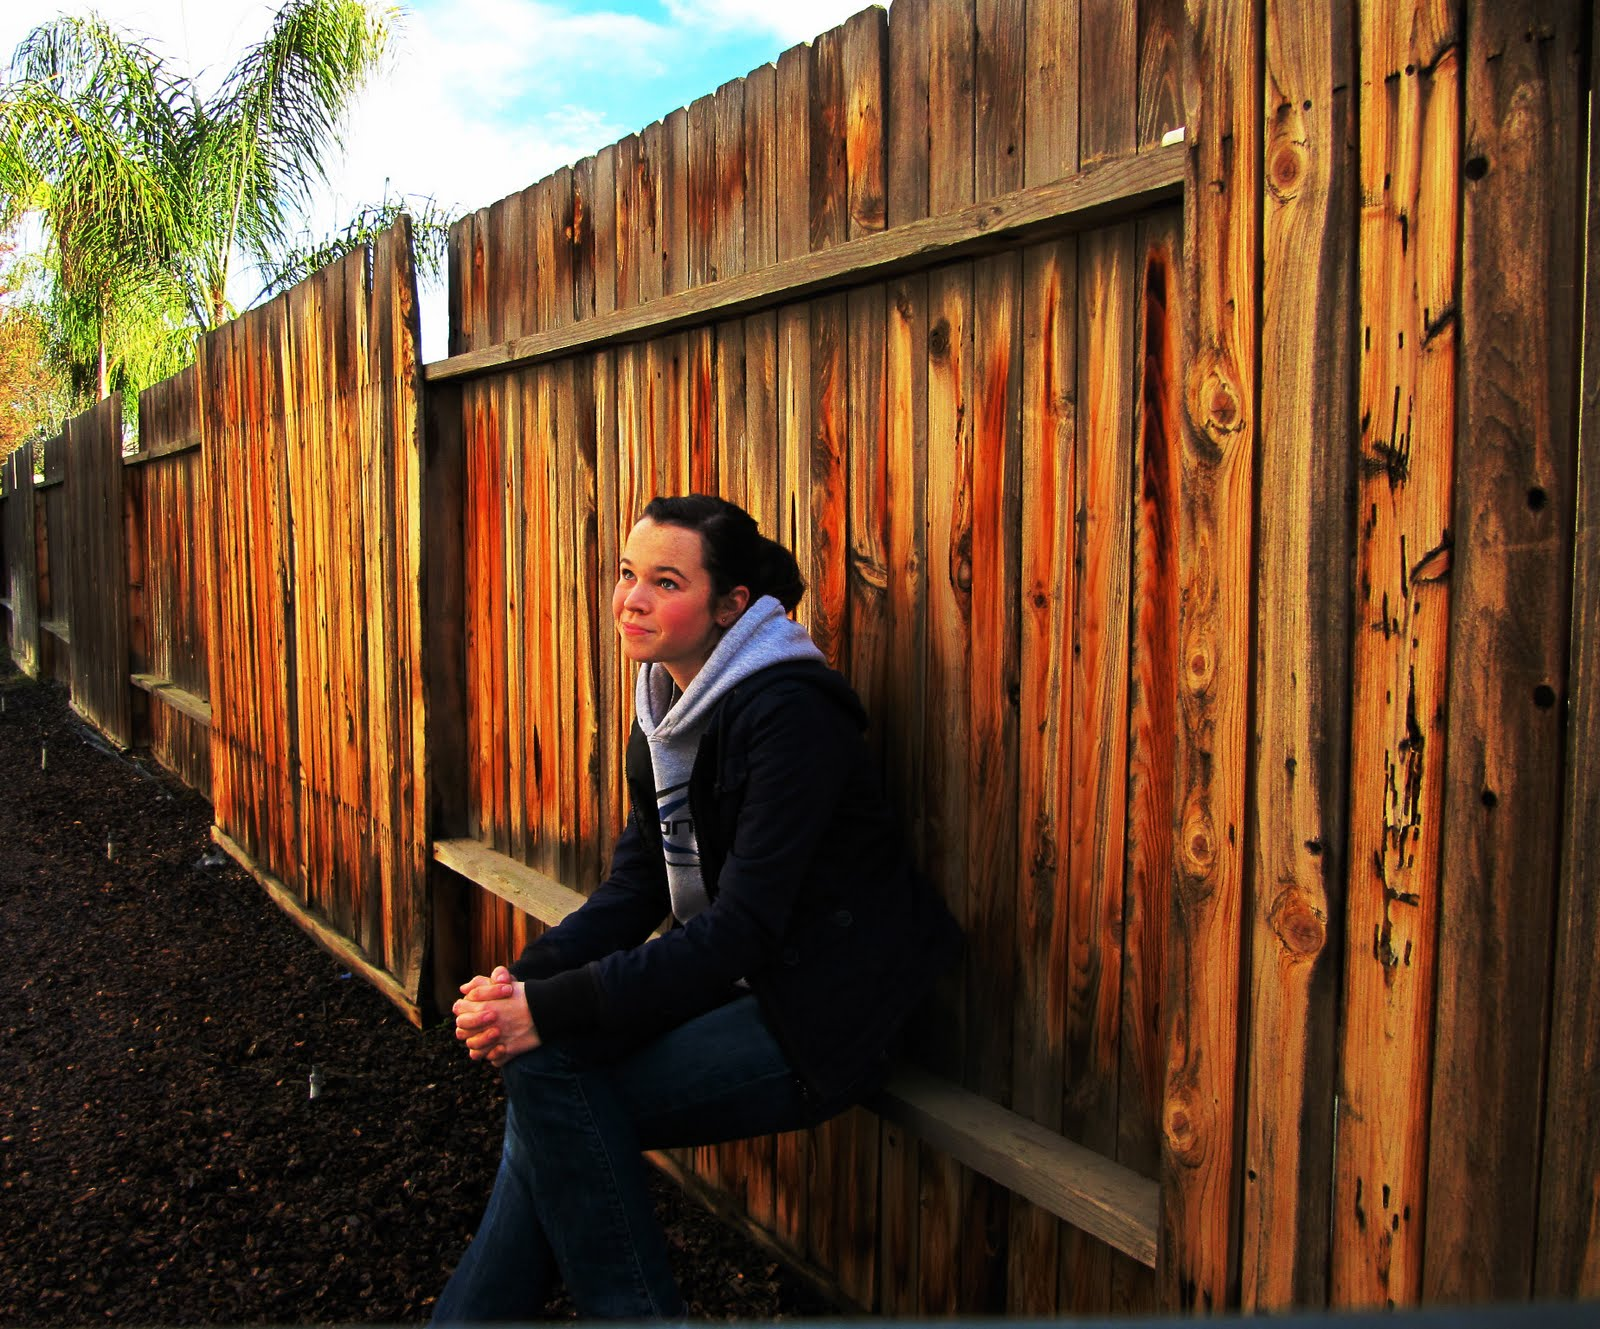 [photoshop-sitting+on+the+fence]